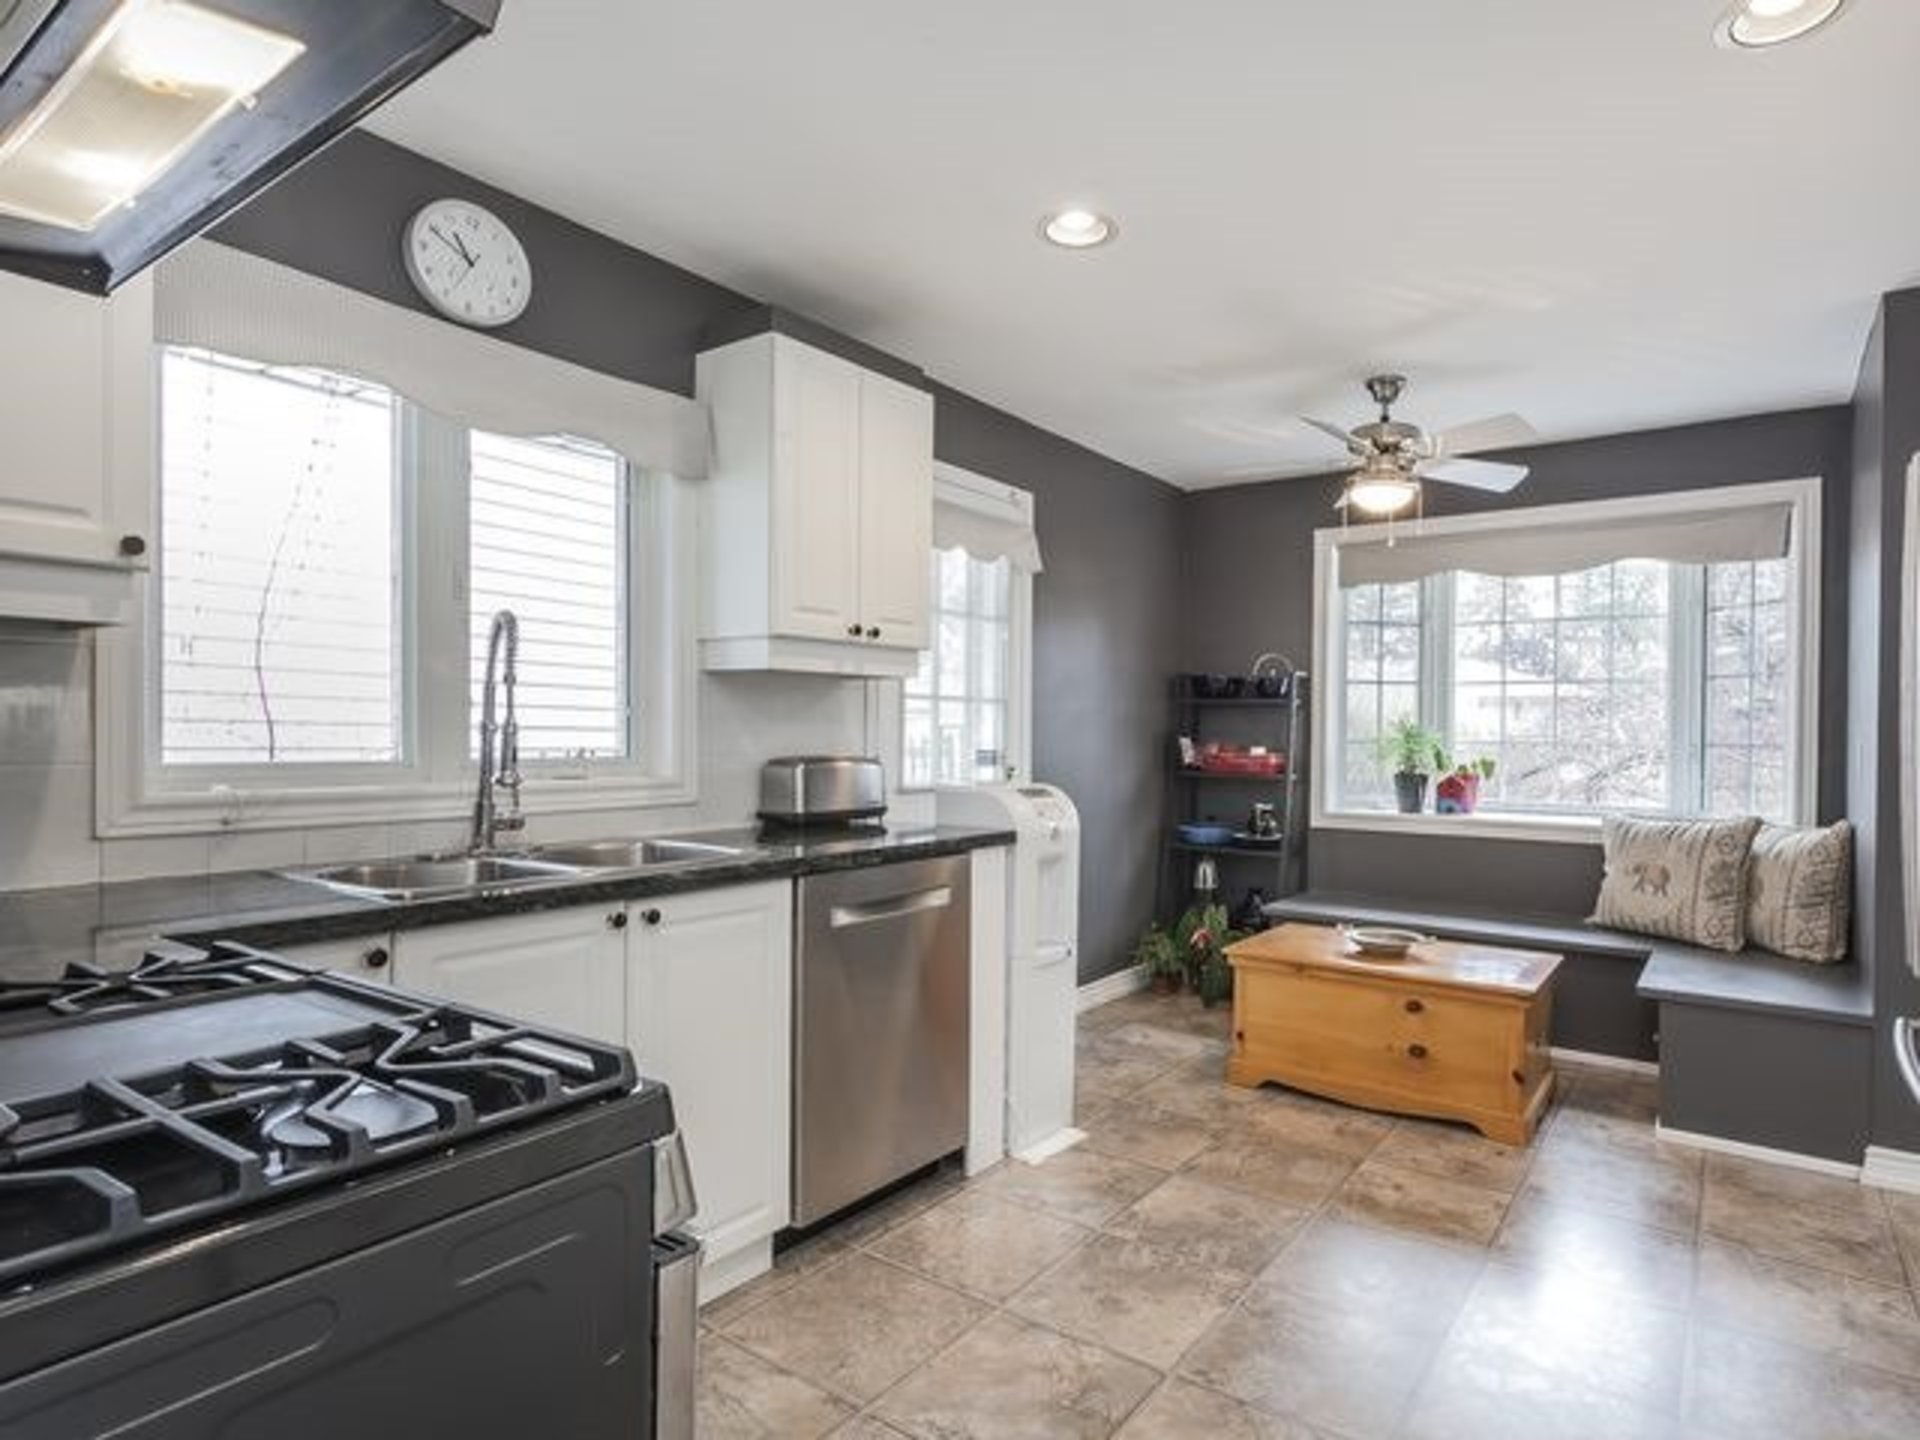 99 at SALE #454 - 53 Sumner Heights Drive, Bayview Village, Toronto